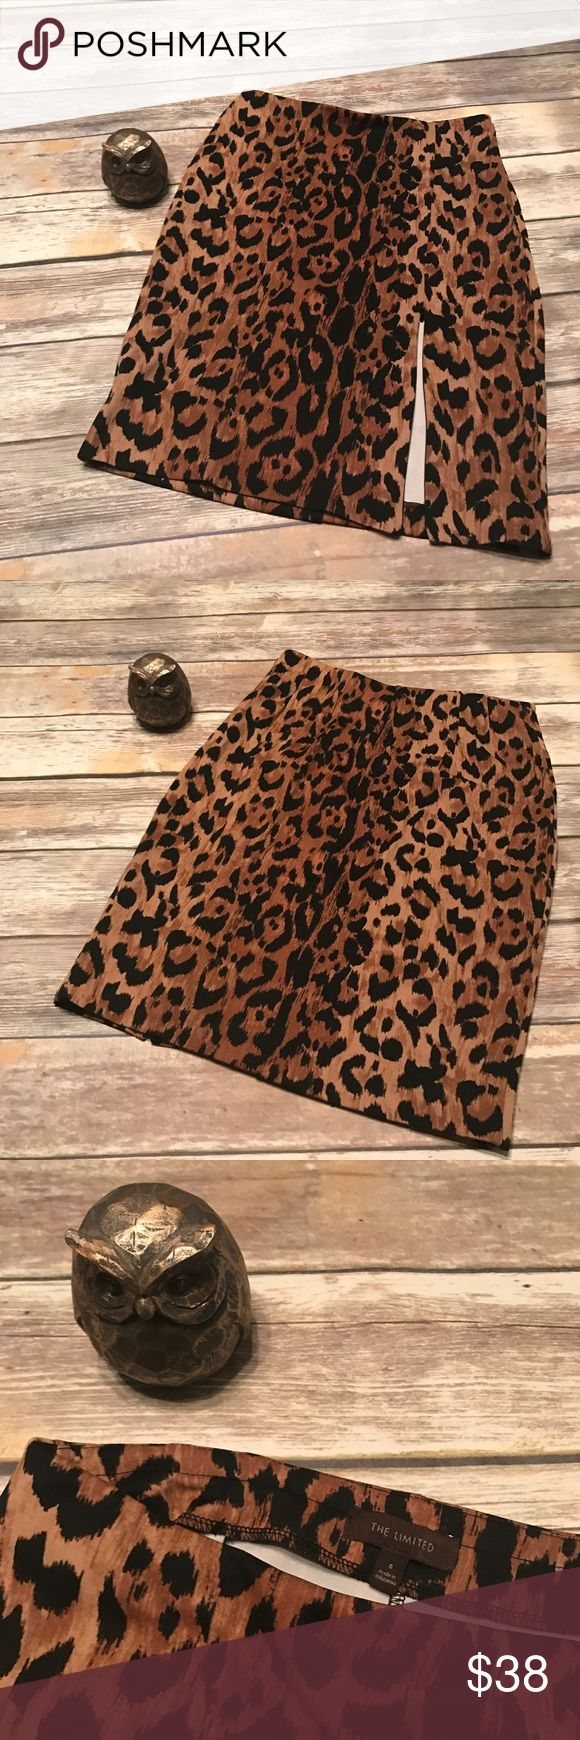 The Limited Animal Print Leopard Pencil Skirt 🐆 Sophisticated Animal Print Leopard Pencil Skirt from The Limited. Size 6. Comes from a pet friendly home. 🐶🐱 The Limited Skirts Pencil